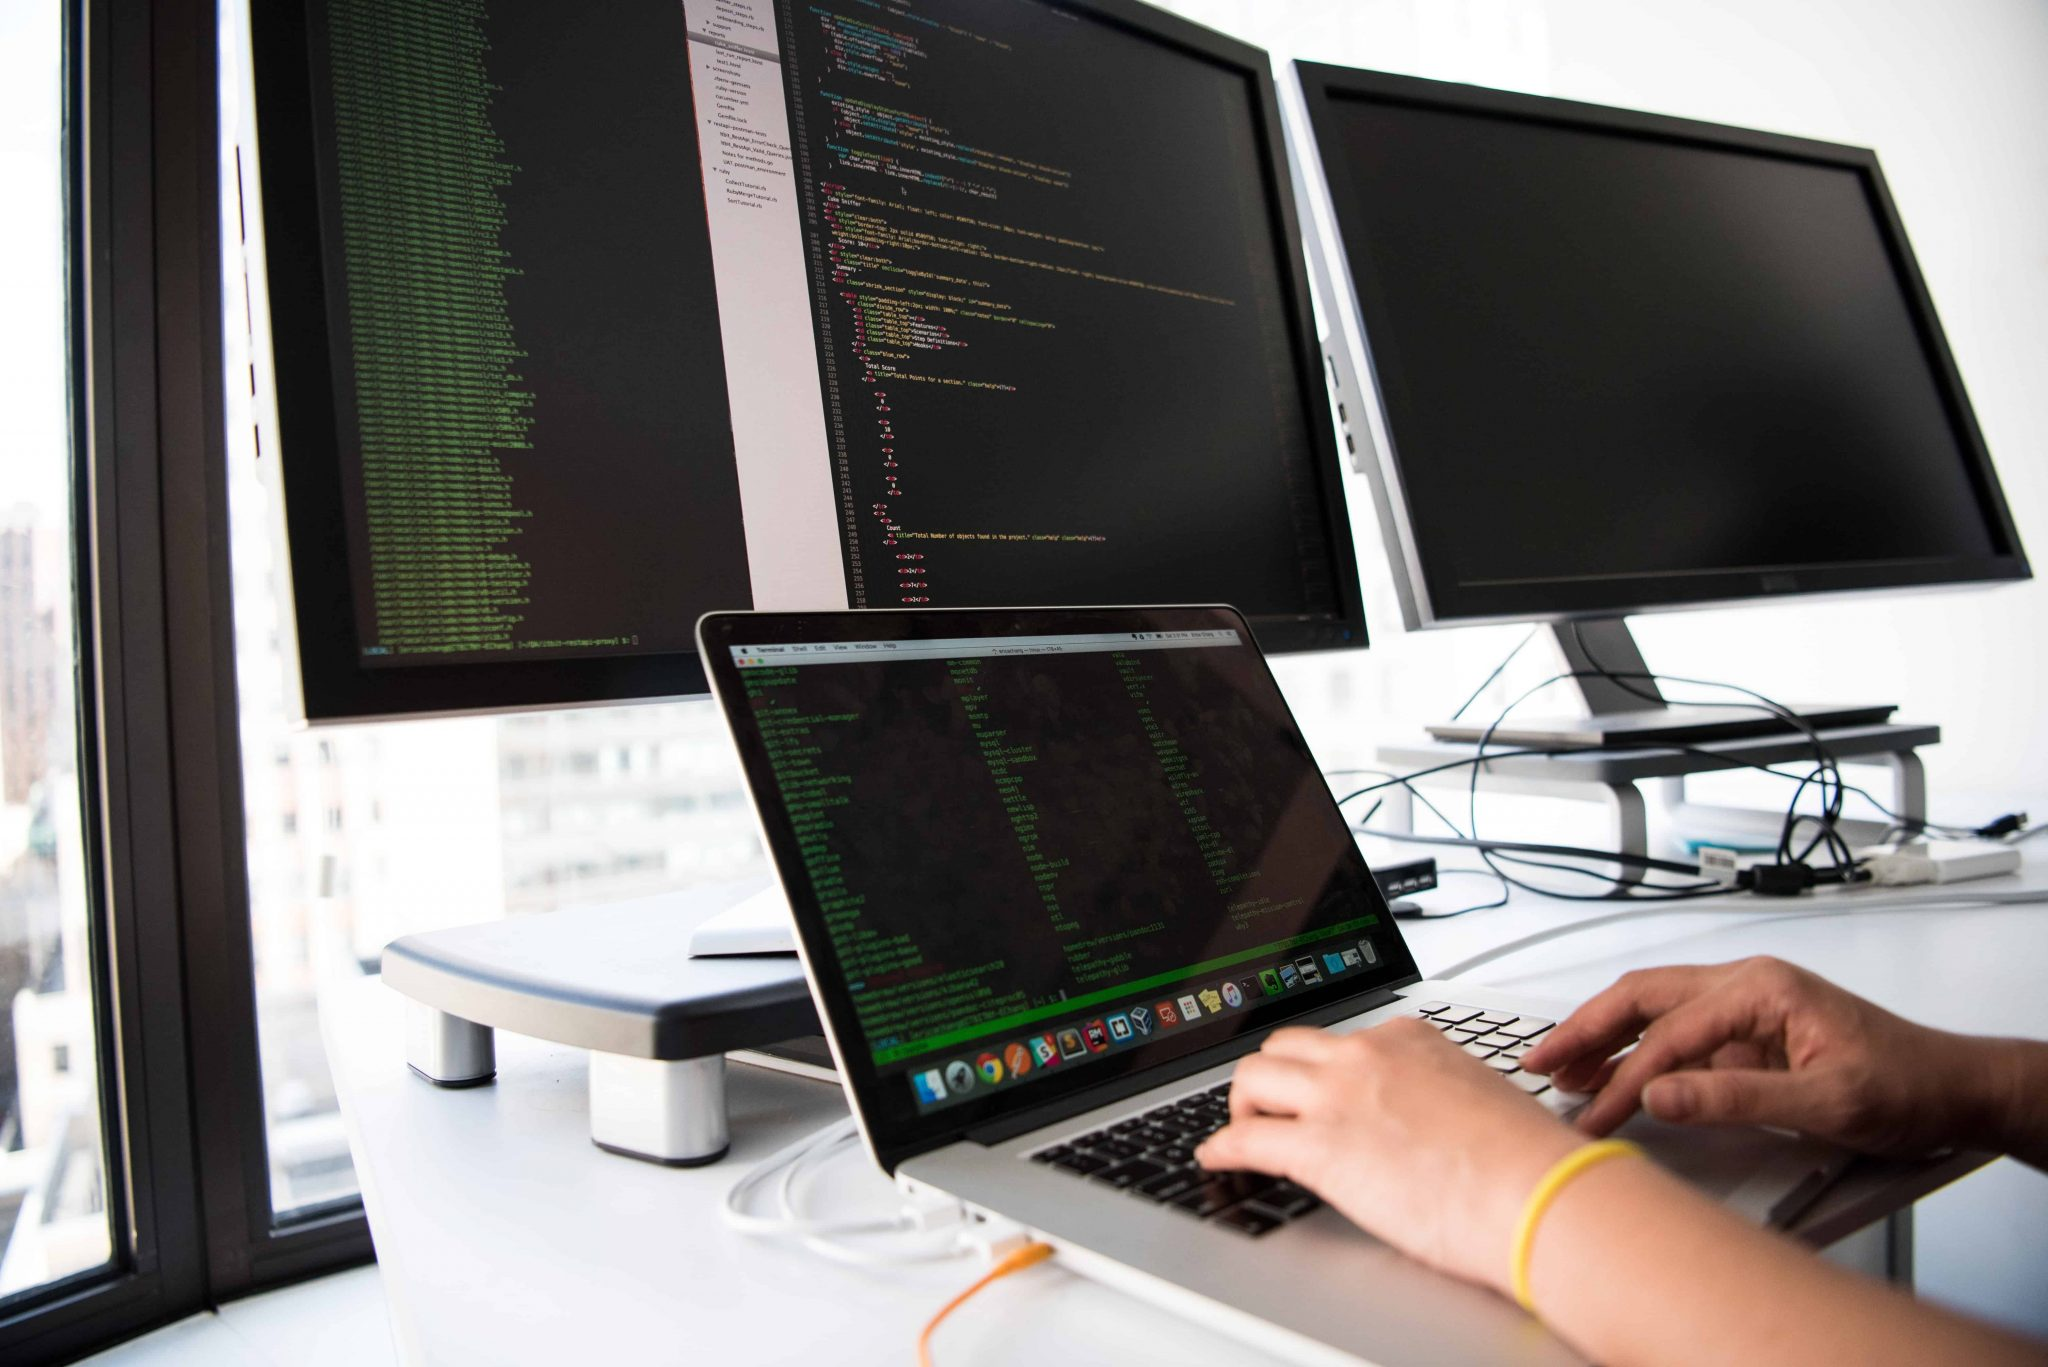 working with big data on computer